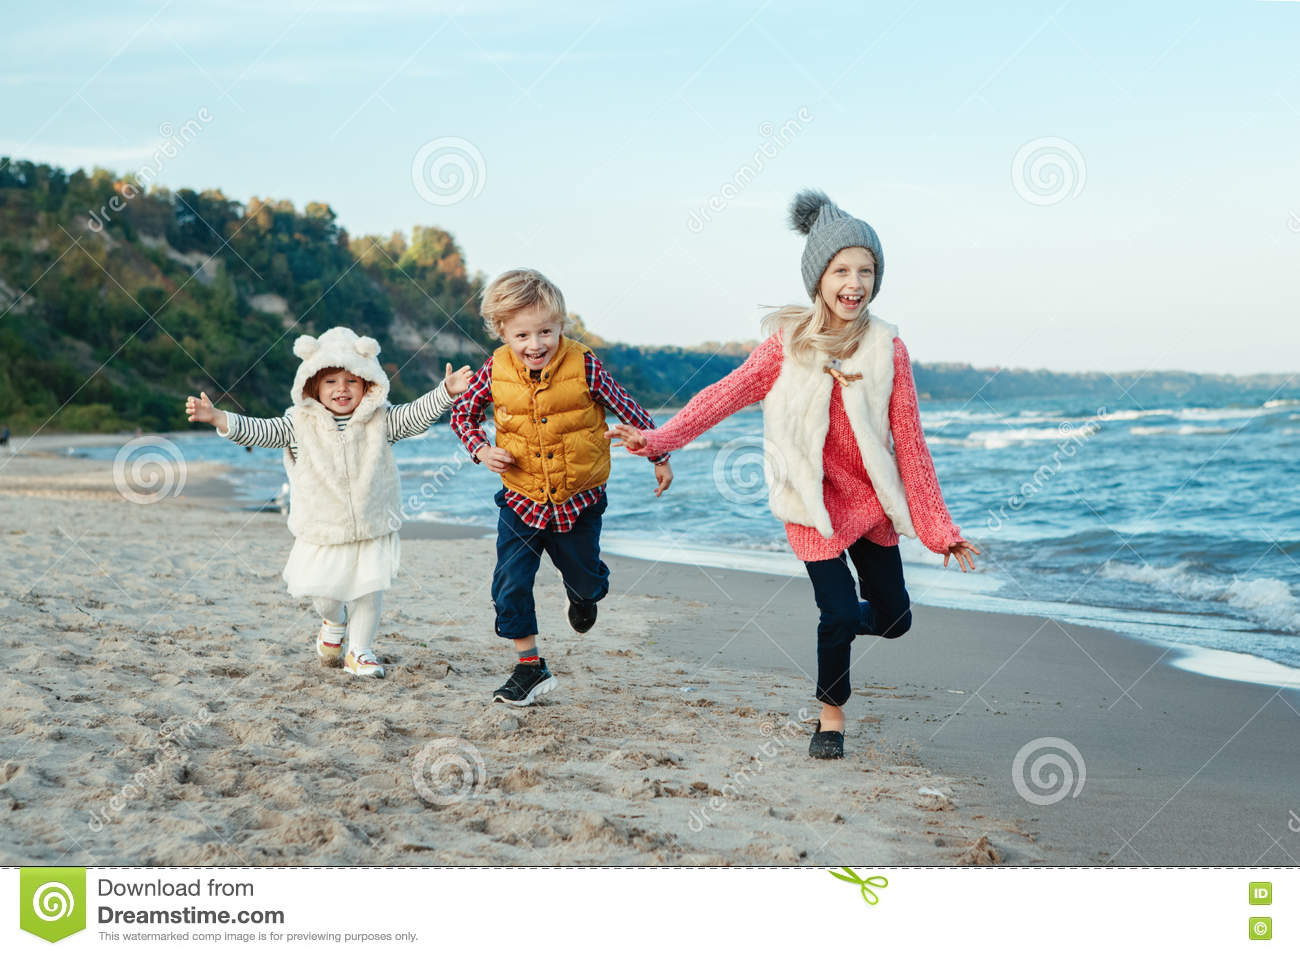 Three funny smiling laughing white Caucasian children kids friends playing running on ocean sea beach on sunset outdoors